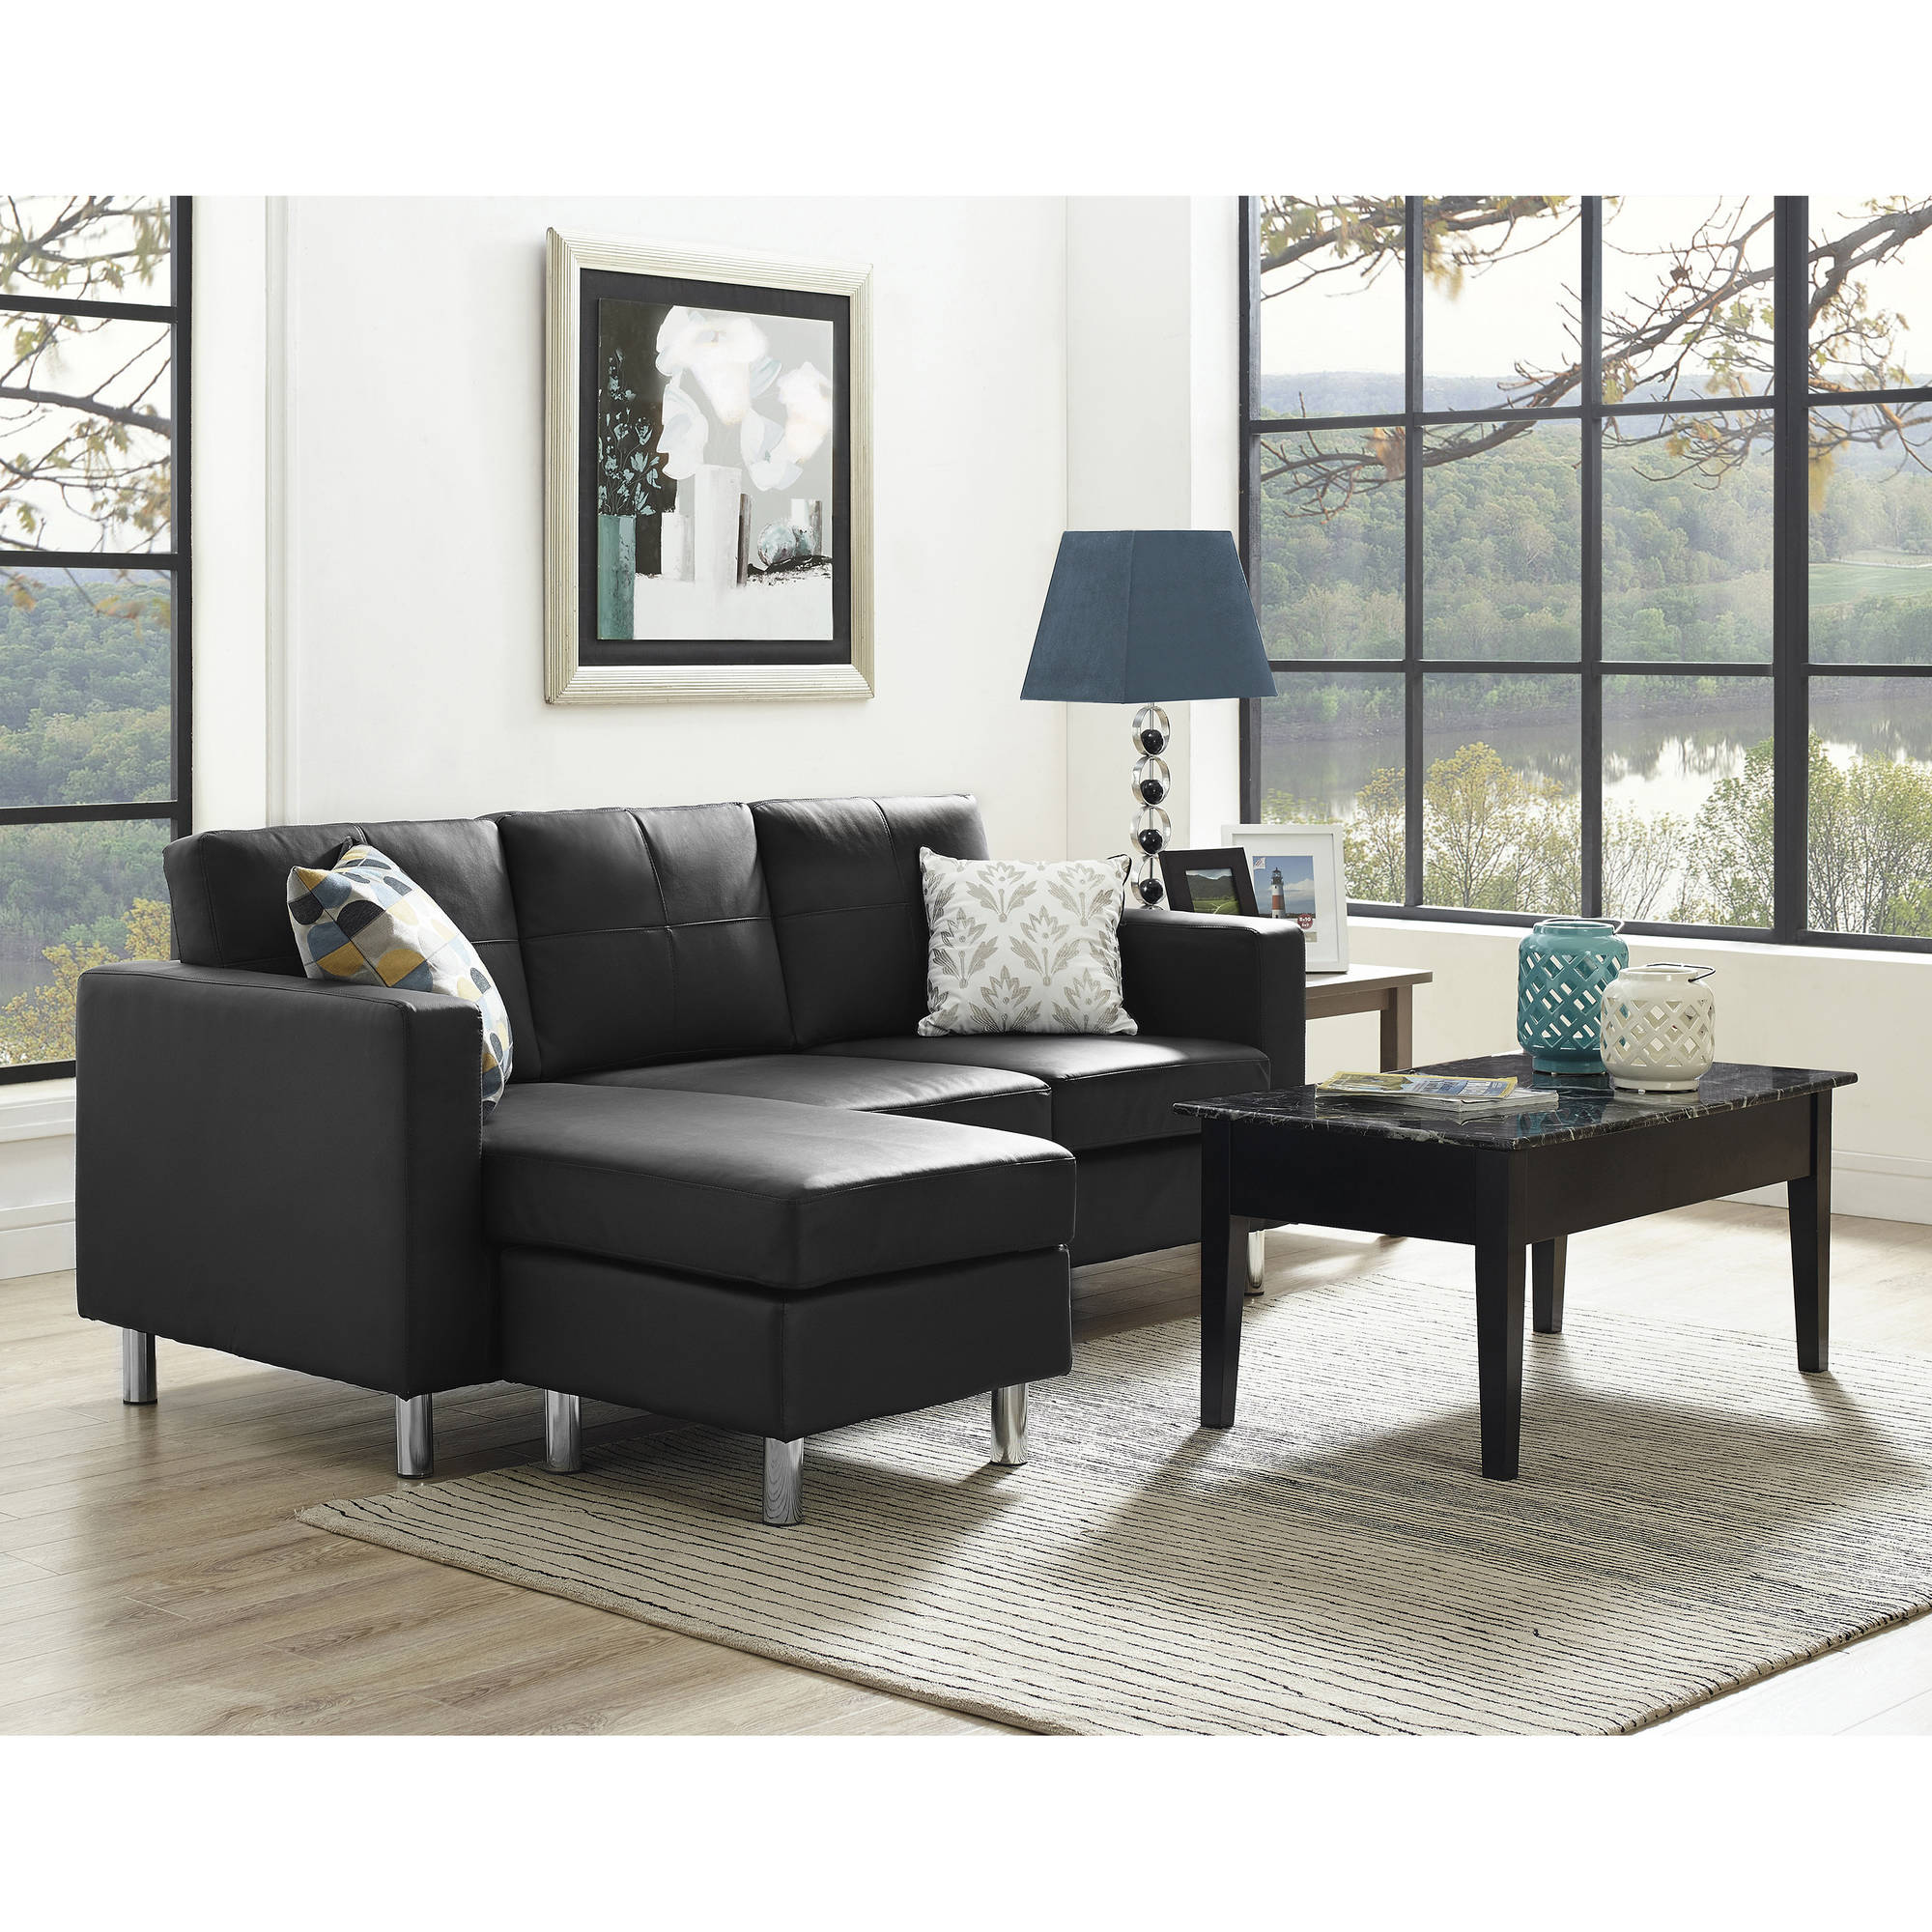 small living room sofa color cleaning machine india dorel spaces configurable sectional